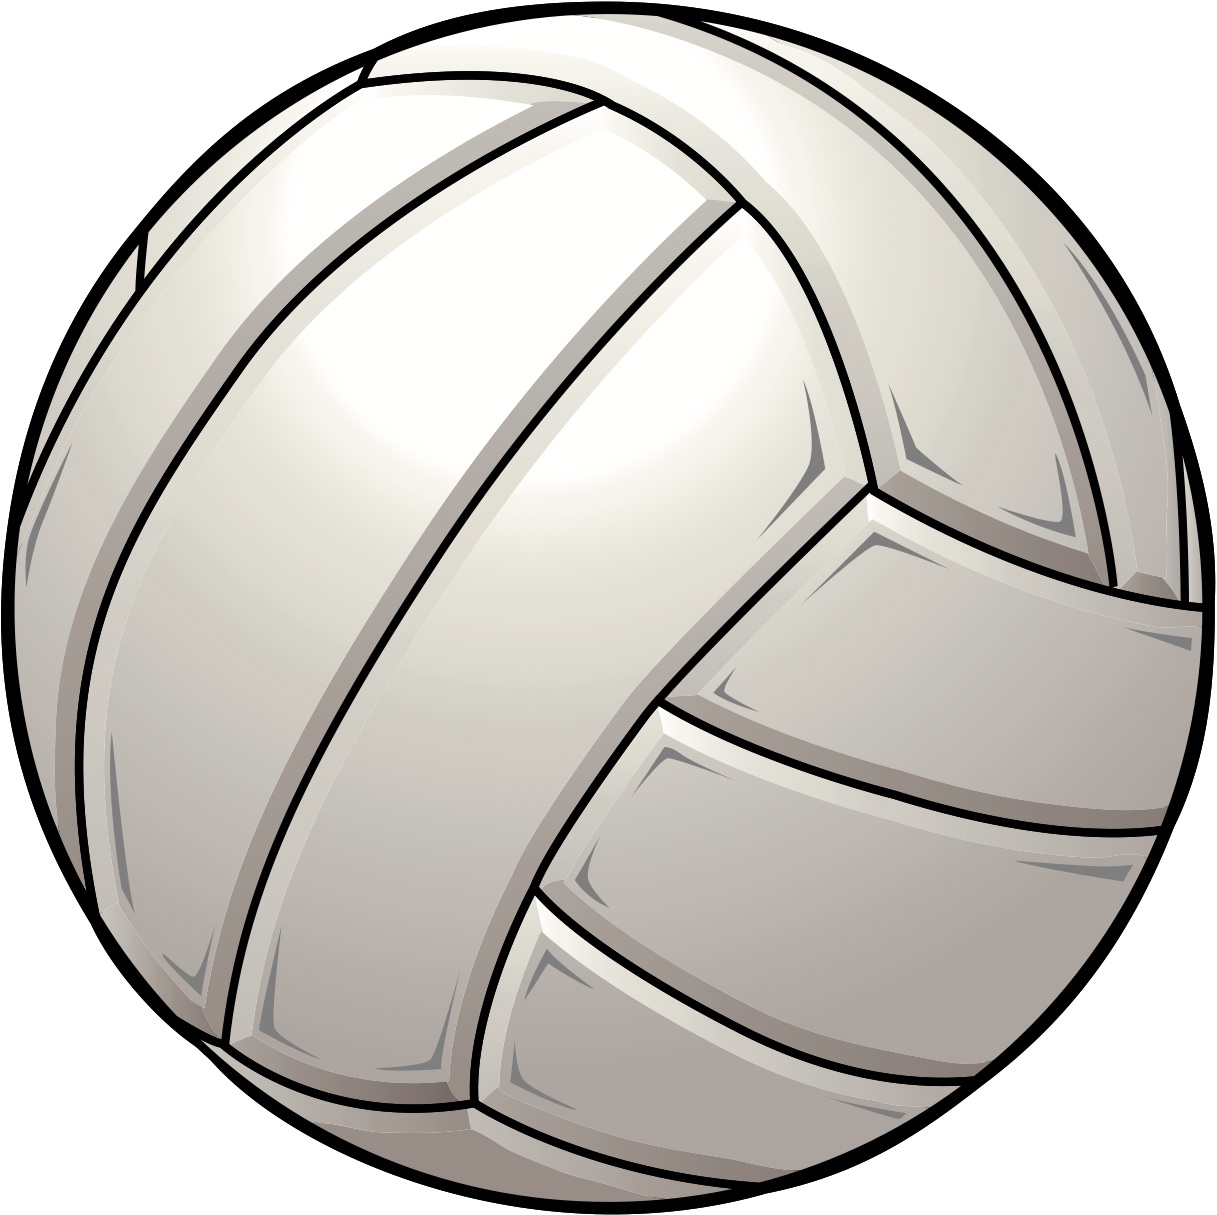 Volleyball Ball Clipart Free Clip Art Images